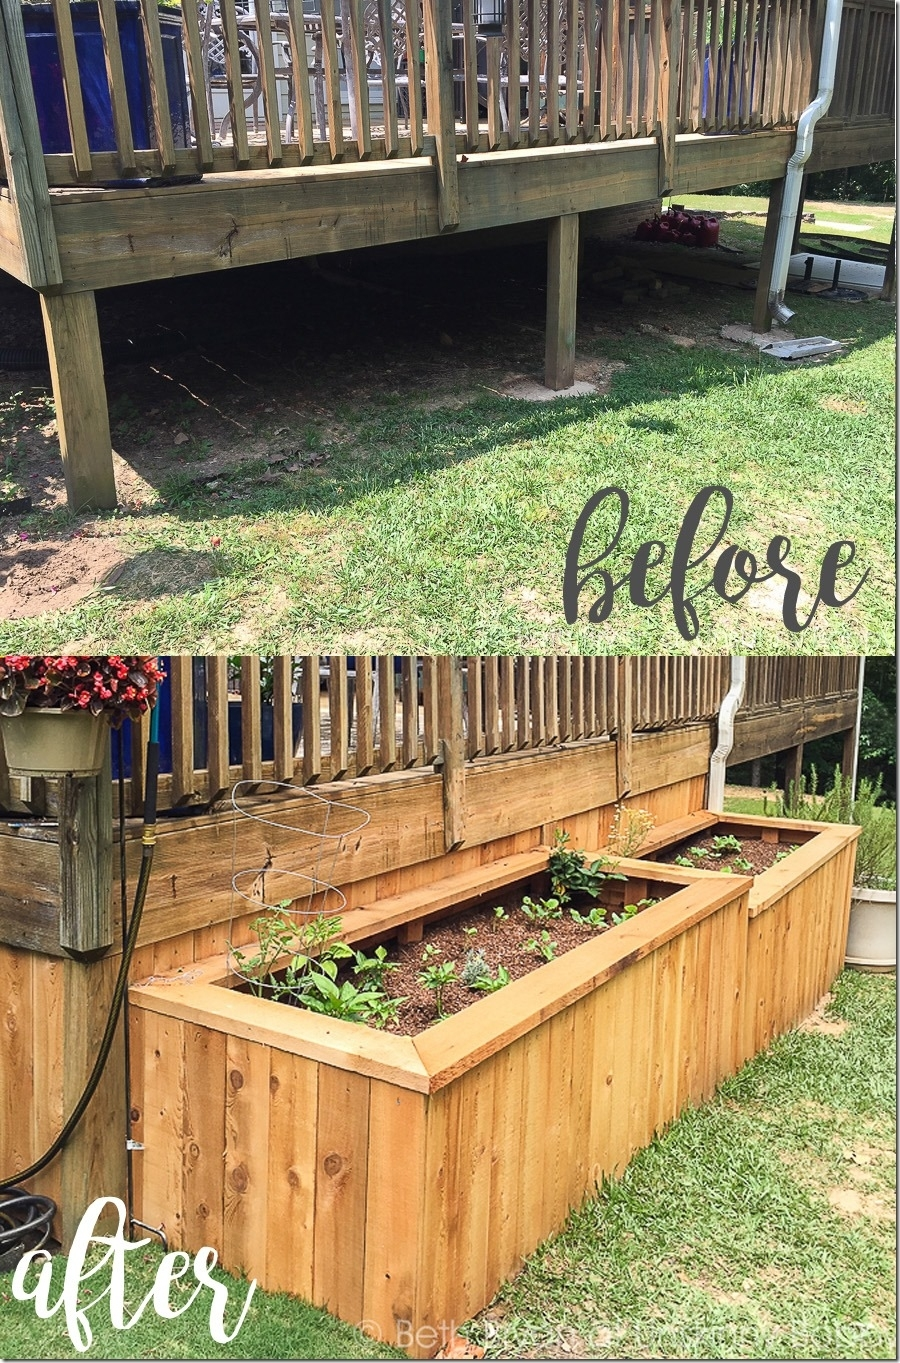 A Backyard Makeover With Raised Garden Beds - Unskinny Boppy with regard to Backyard Garden Raised Beds